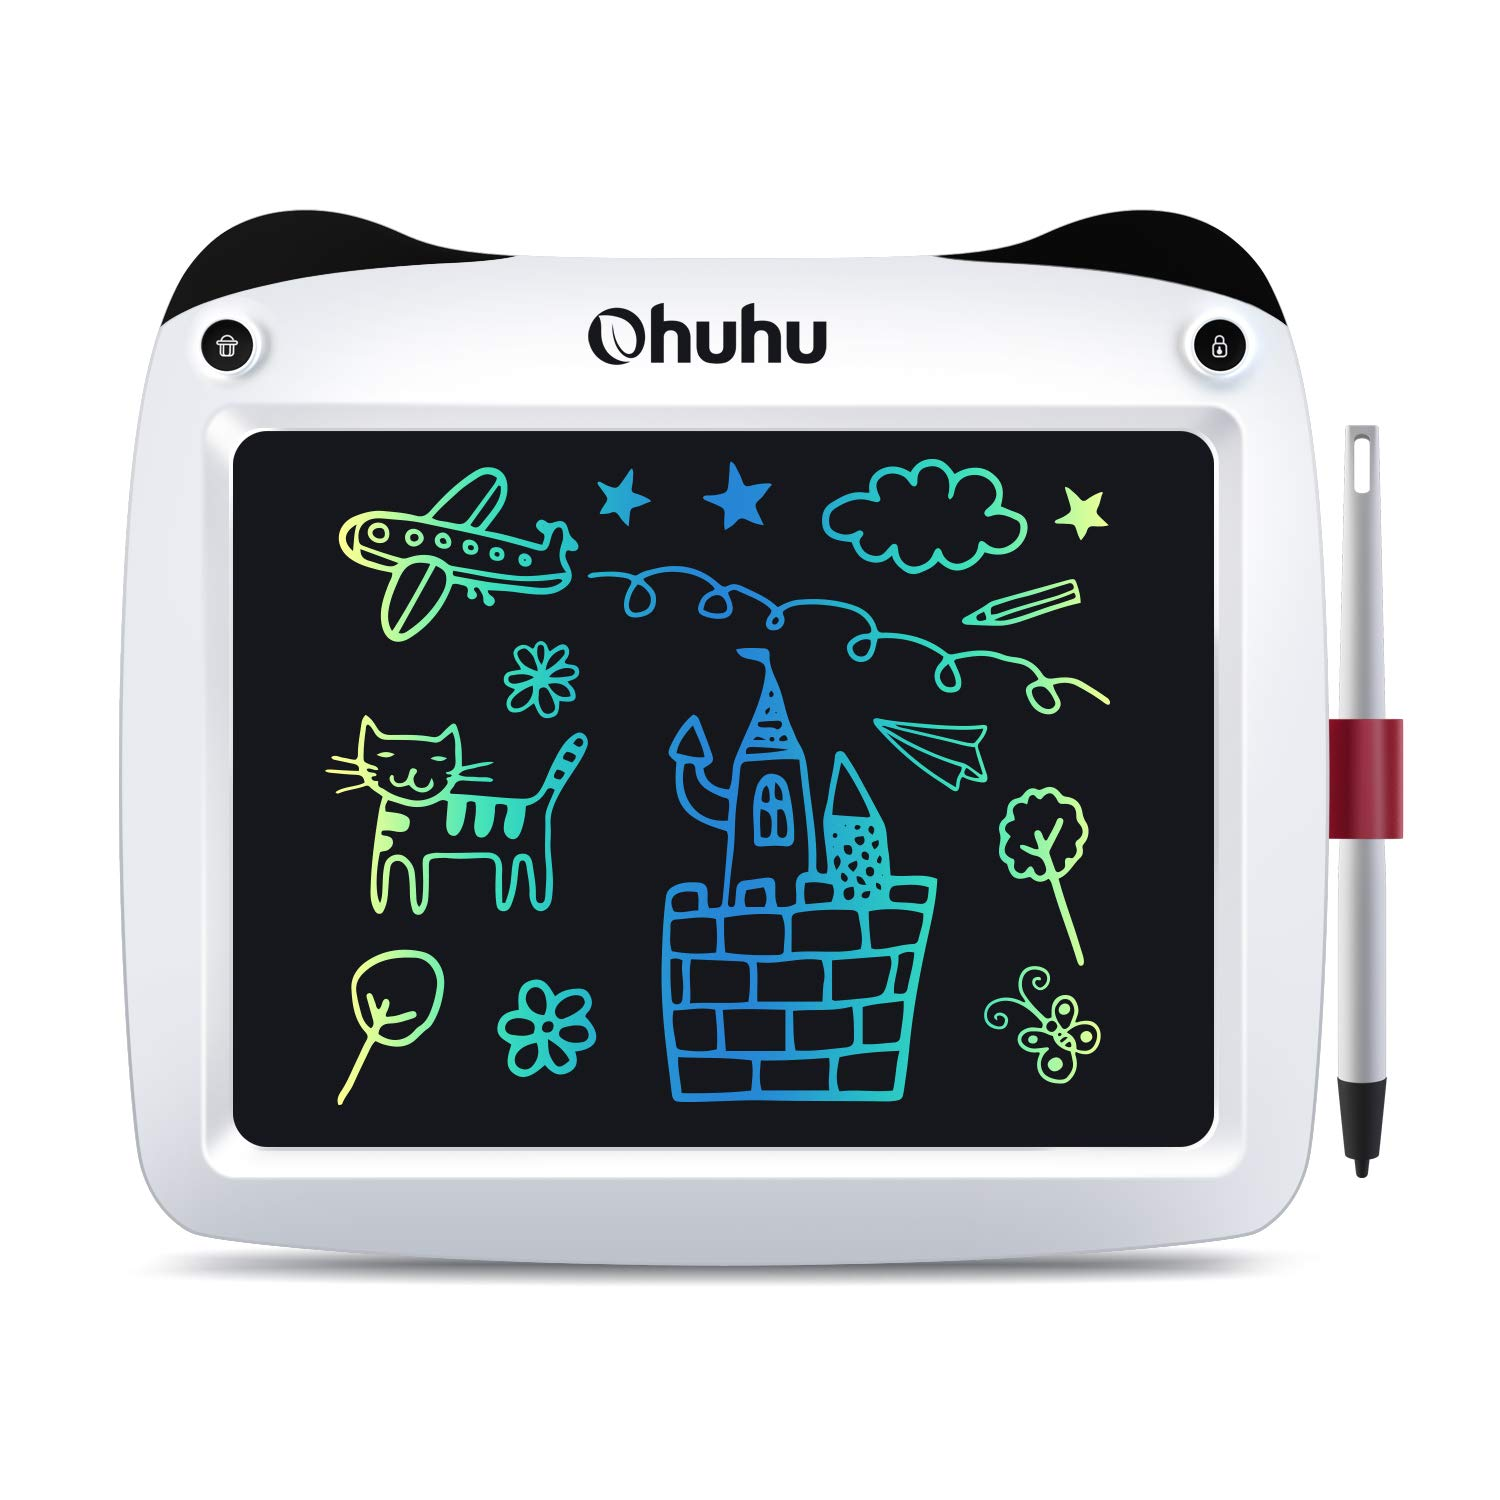 """LCD Writing Tablet Colorful Screen, Ohuhu 9"""" Electronic Drawing Board, Doodle Board, LCD Digital Handwriting Pad Gifts for Kids Children at Home and School, Scribble and Play Learning Boards Ages 3+"""